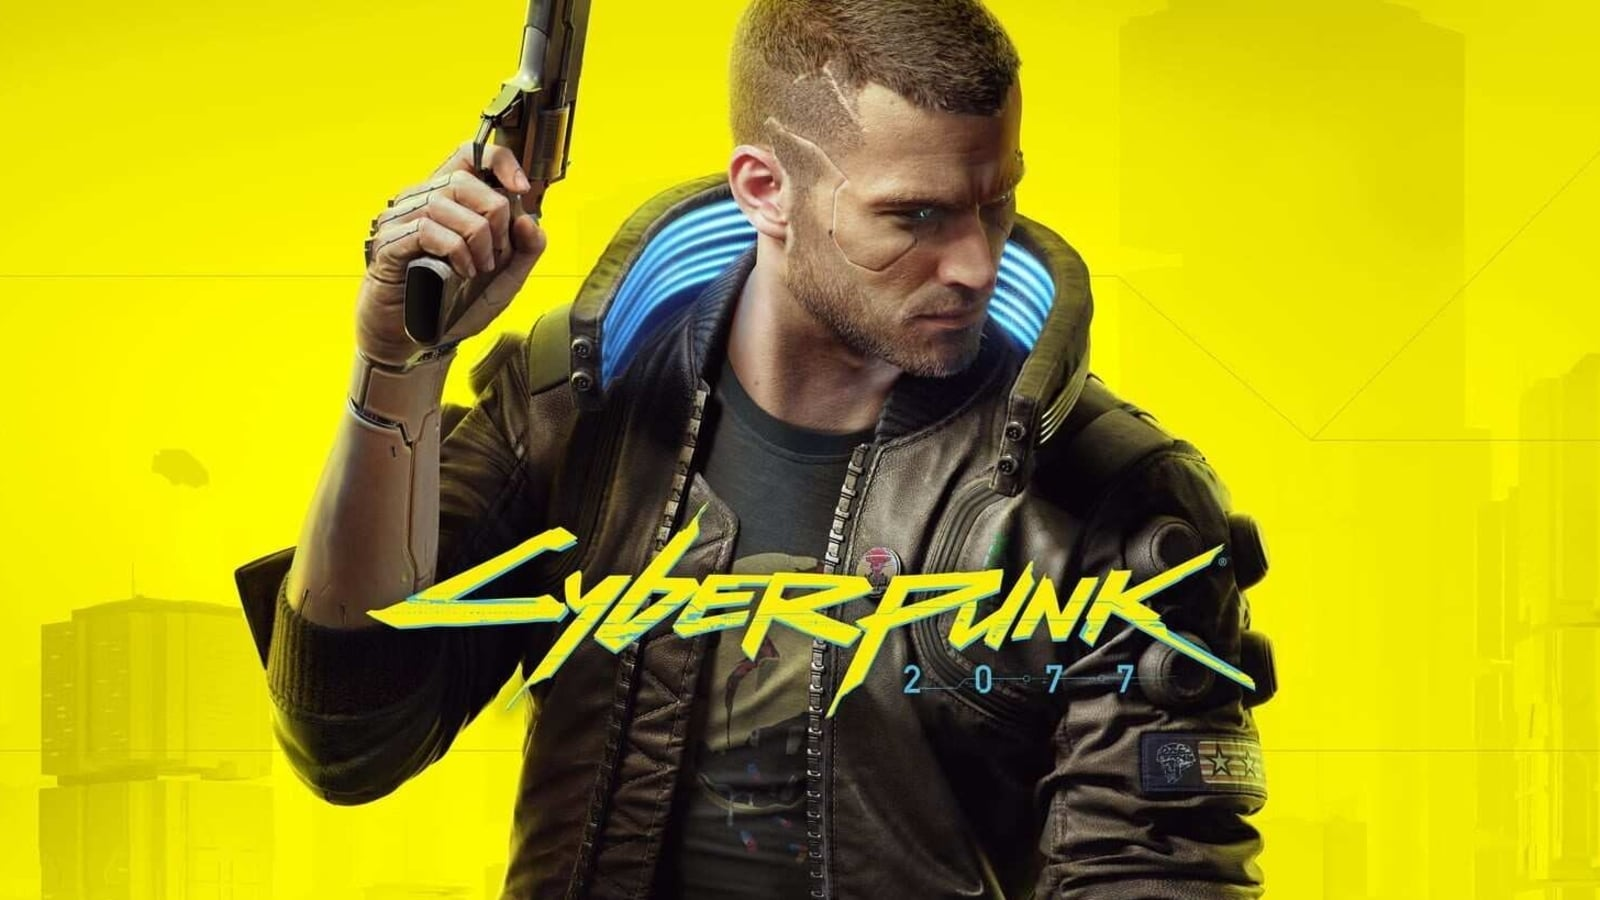 Cyberpunk Maker announces quarterly earnings drop on Playstation cancellation